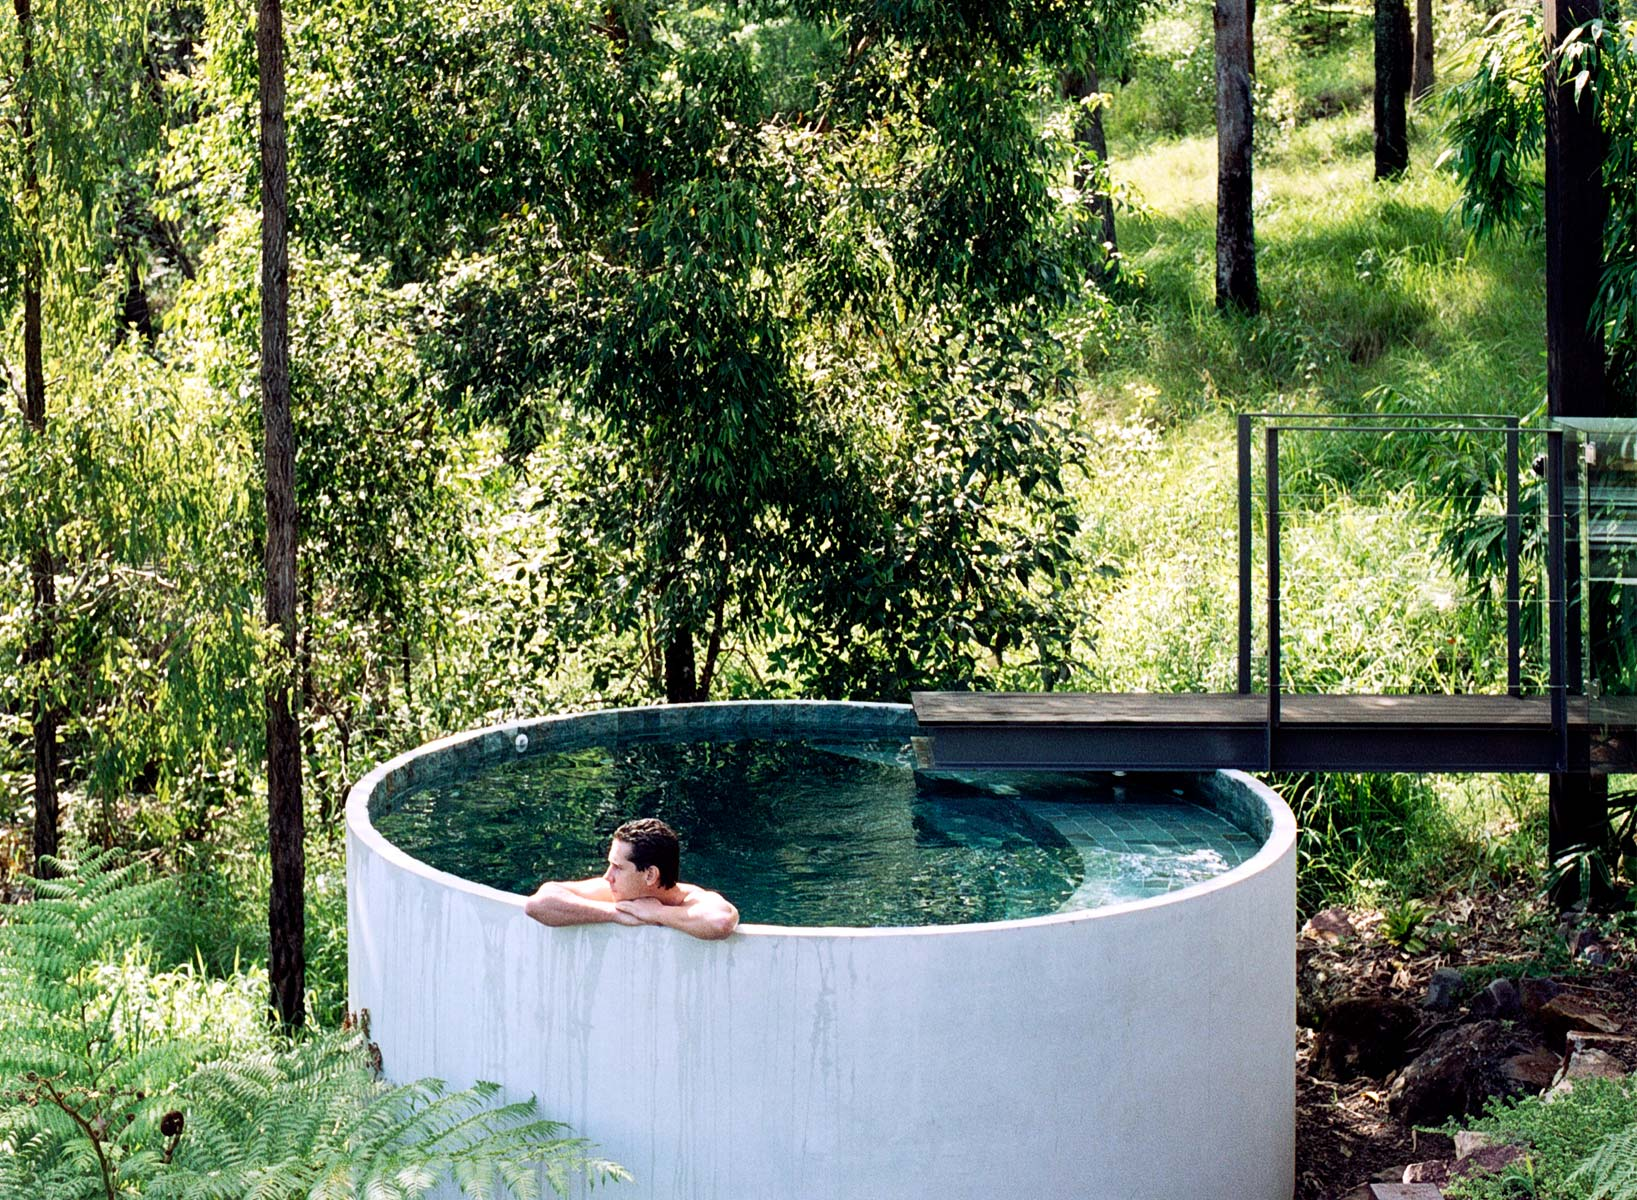 pool-interesting-above-ground-plunge-pool-in-the-middle-of-nature-excellent-above-ground-plunge-pool-design-idea